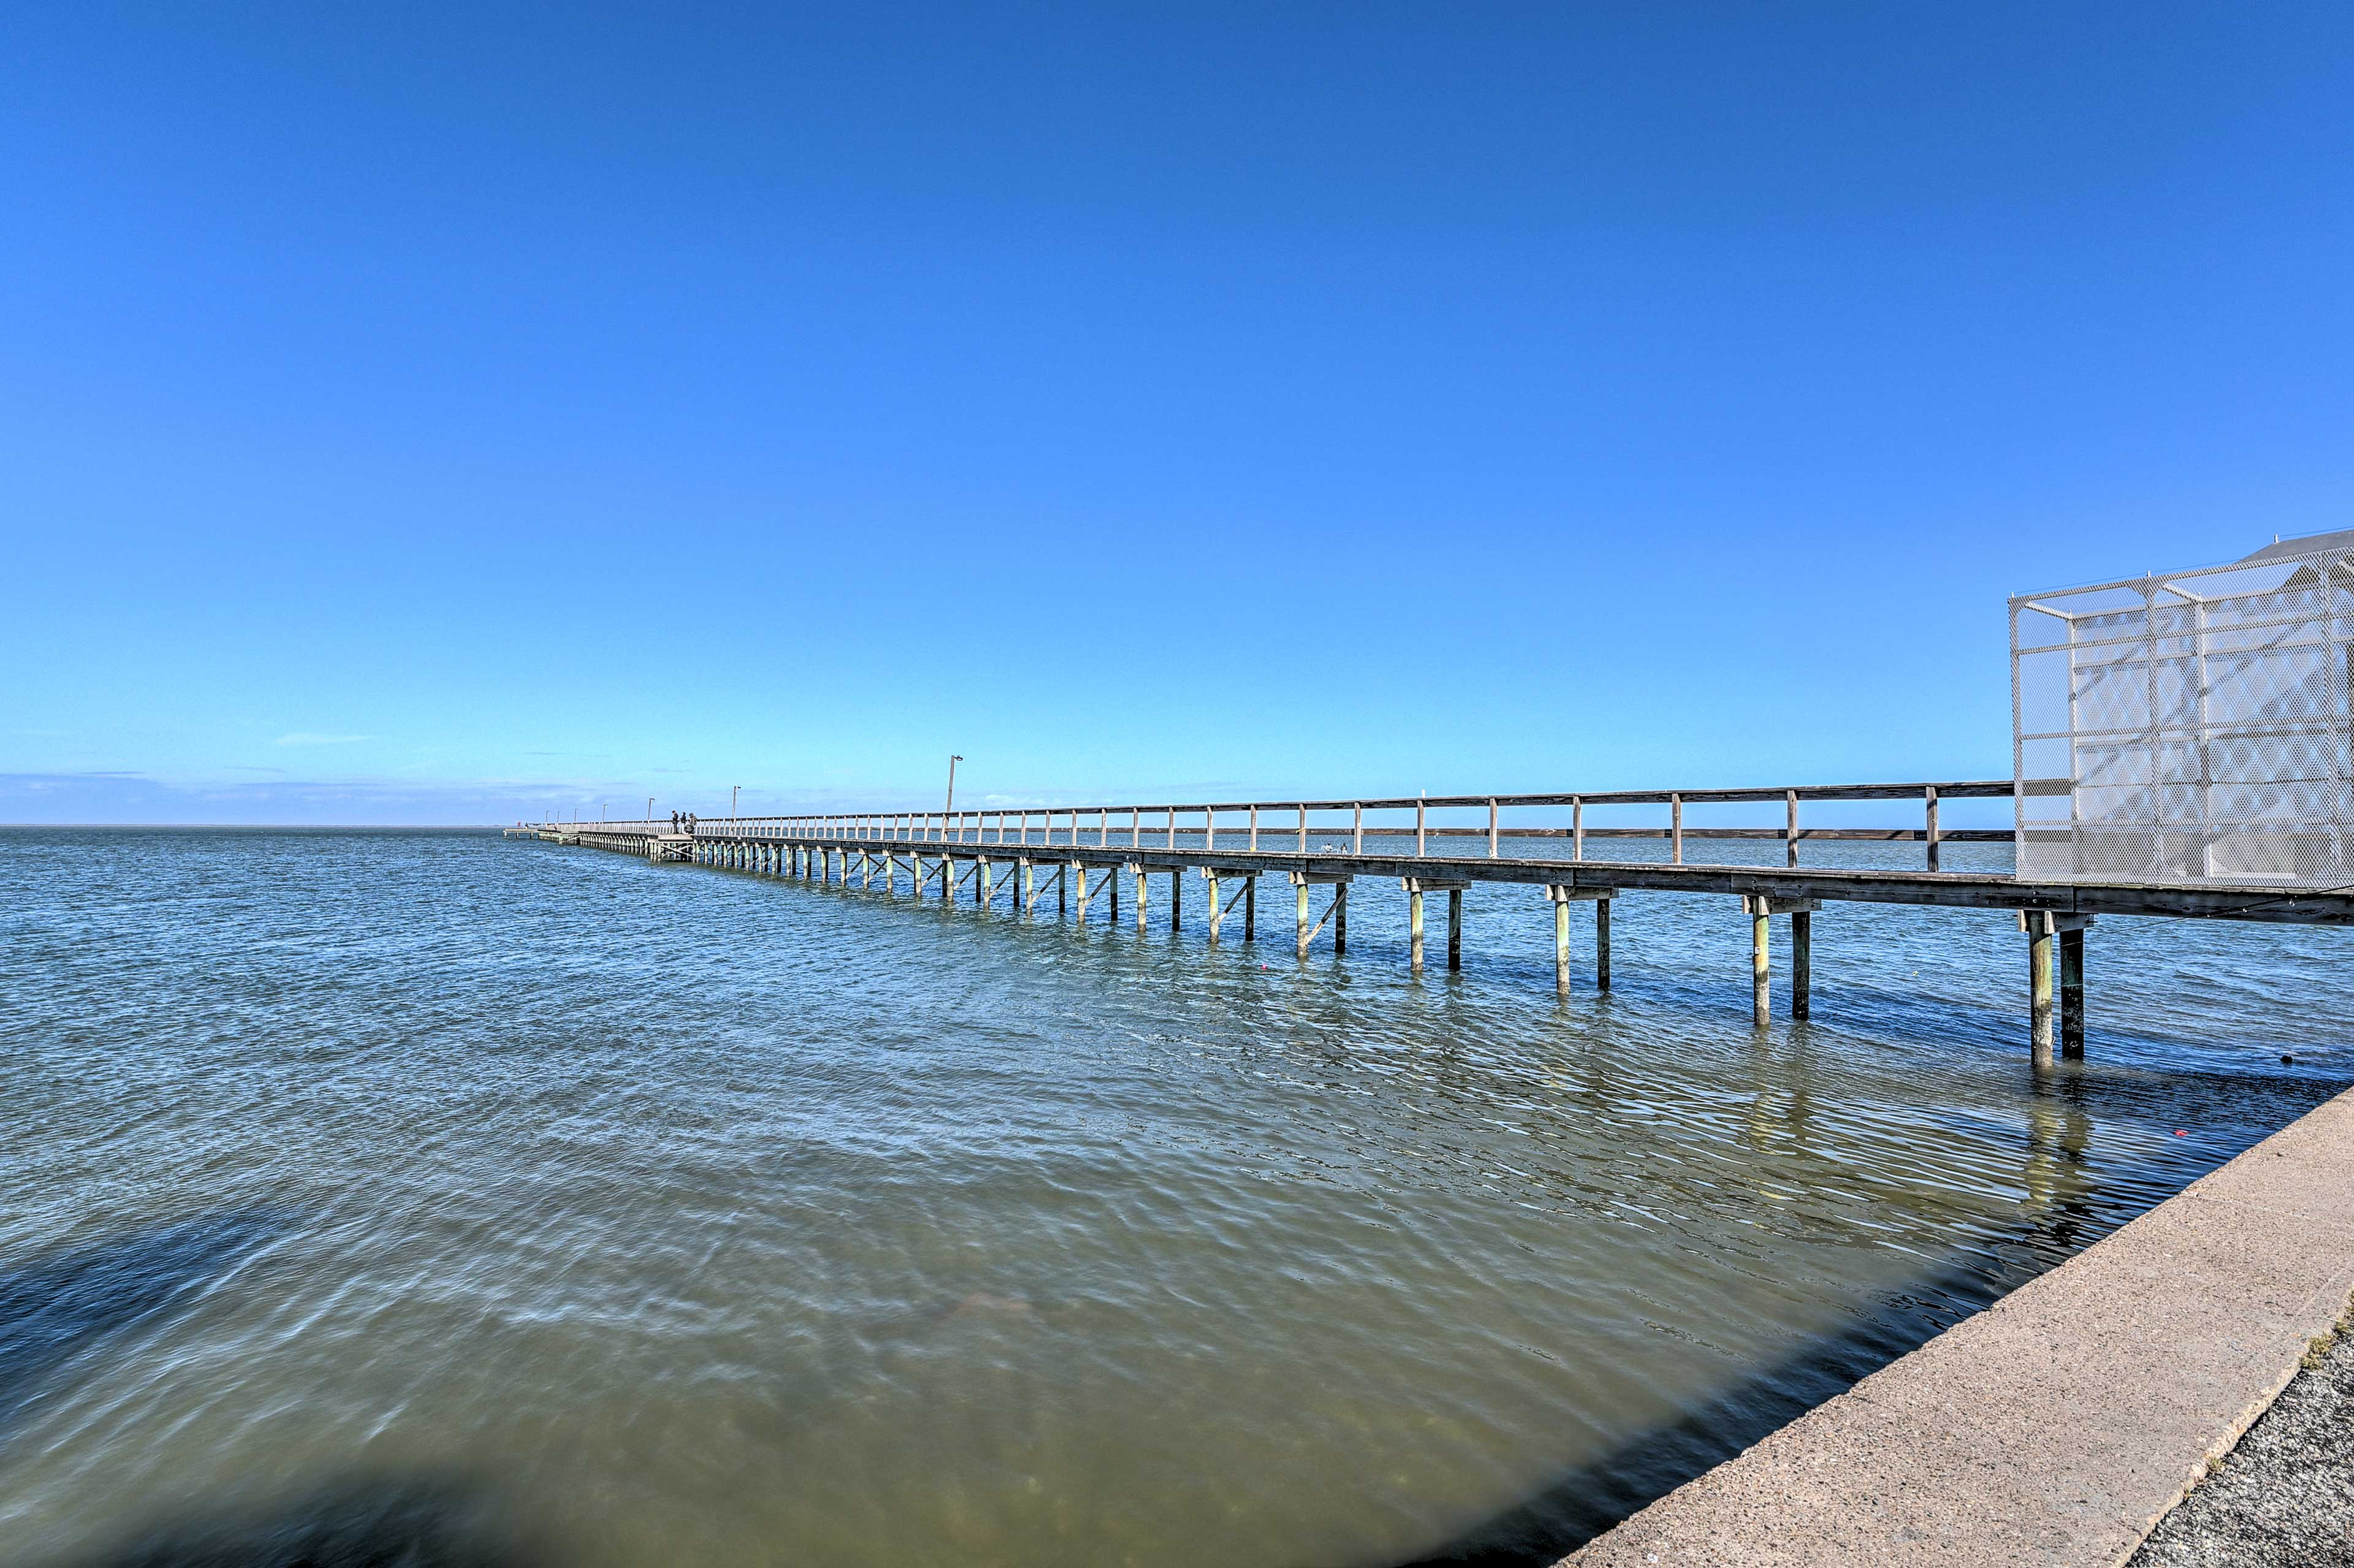 810-Foot Community Pier | Additional On-Site Fee May Apply